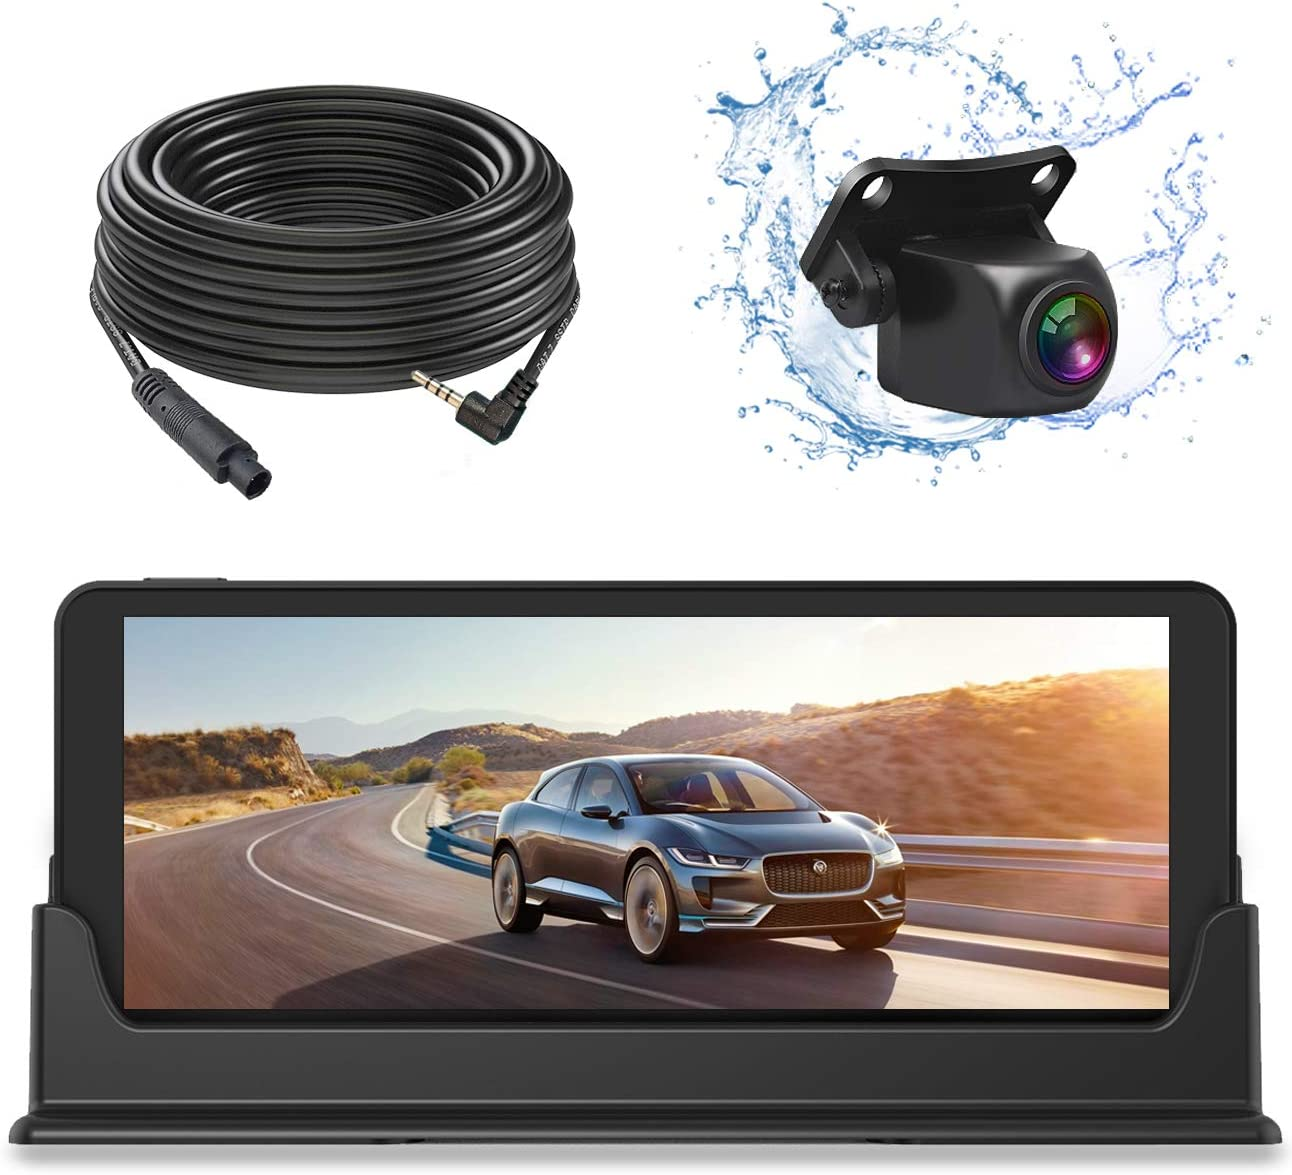 JUSTONE 1080P HD Upgrade Backup Camera and Monitor Kit 7 inch Widescreen for Car SUV Truck Pickup with 49ft Long Wired Rear Camera with Parking Guideline